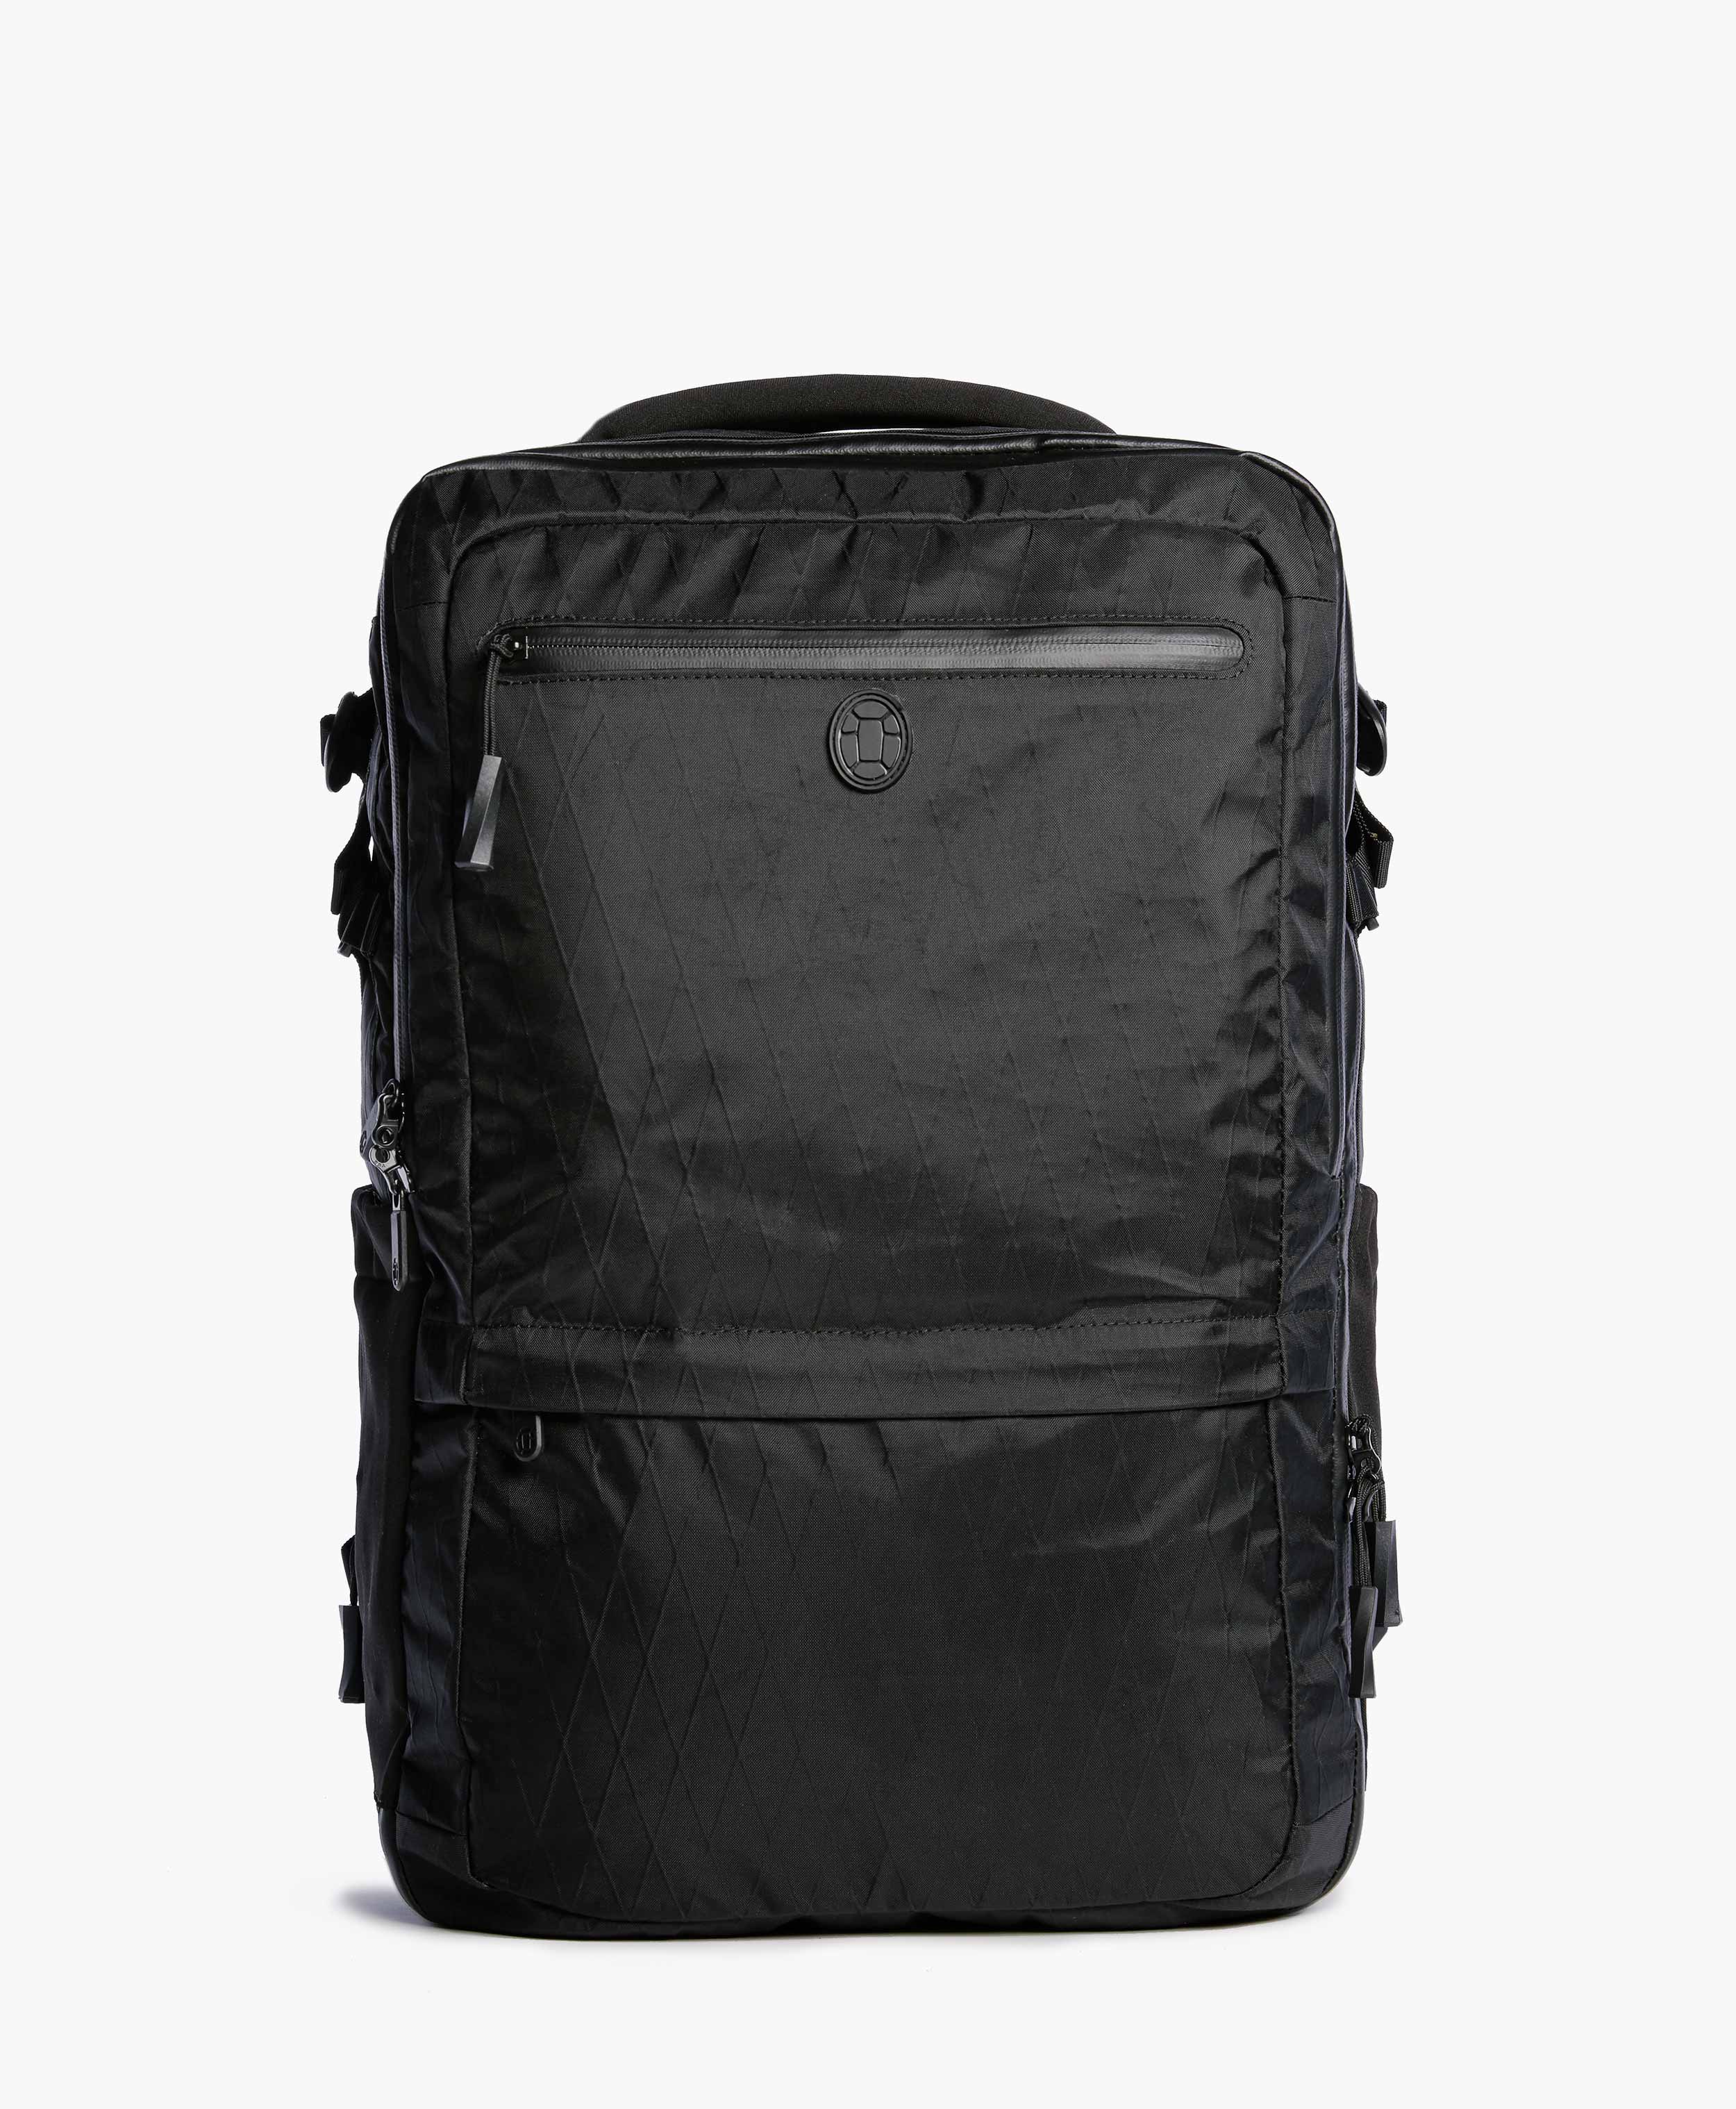 8ba1ddc3c3 Outbreaker Travel Backpack